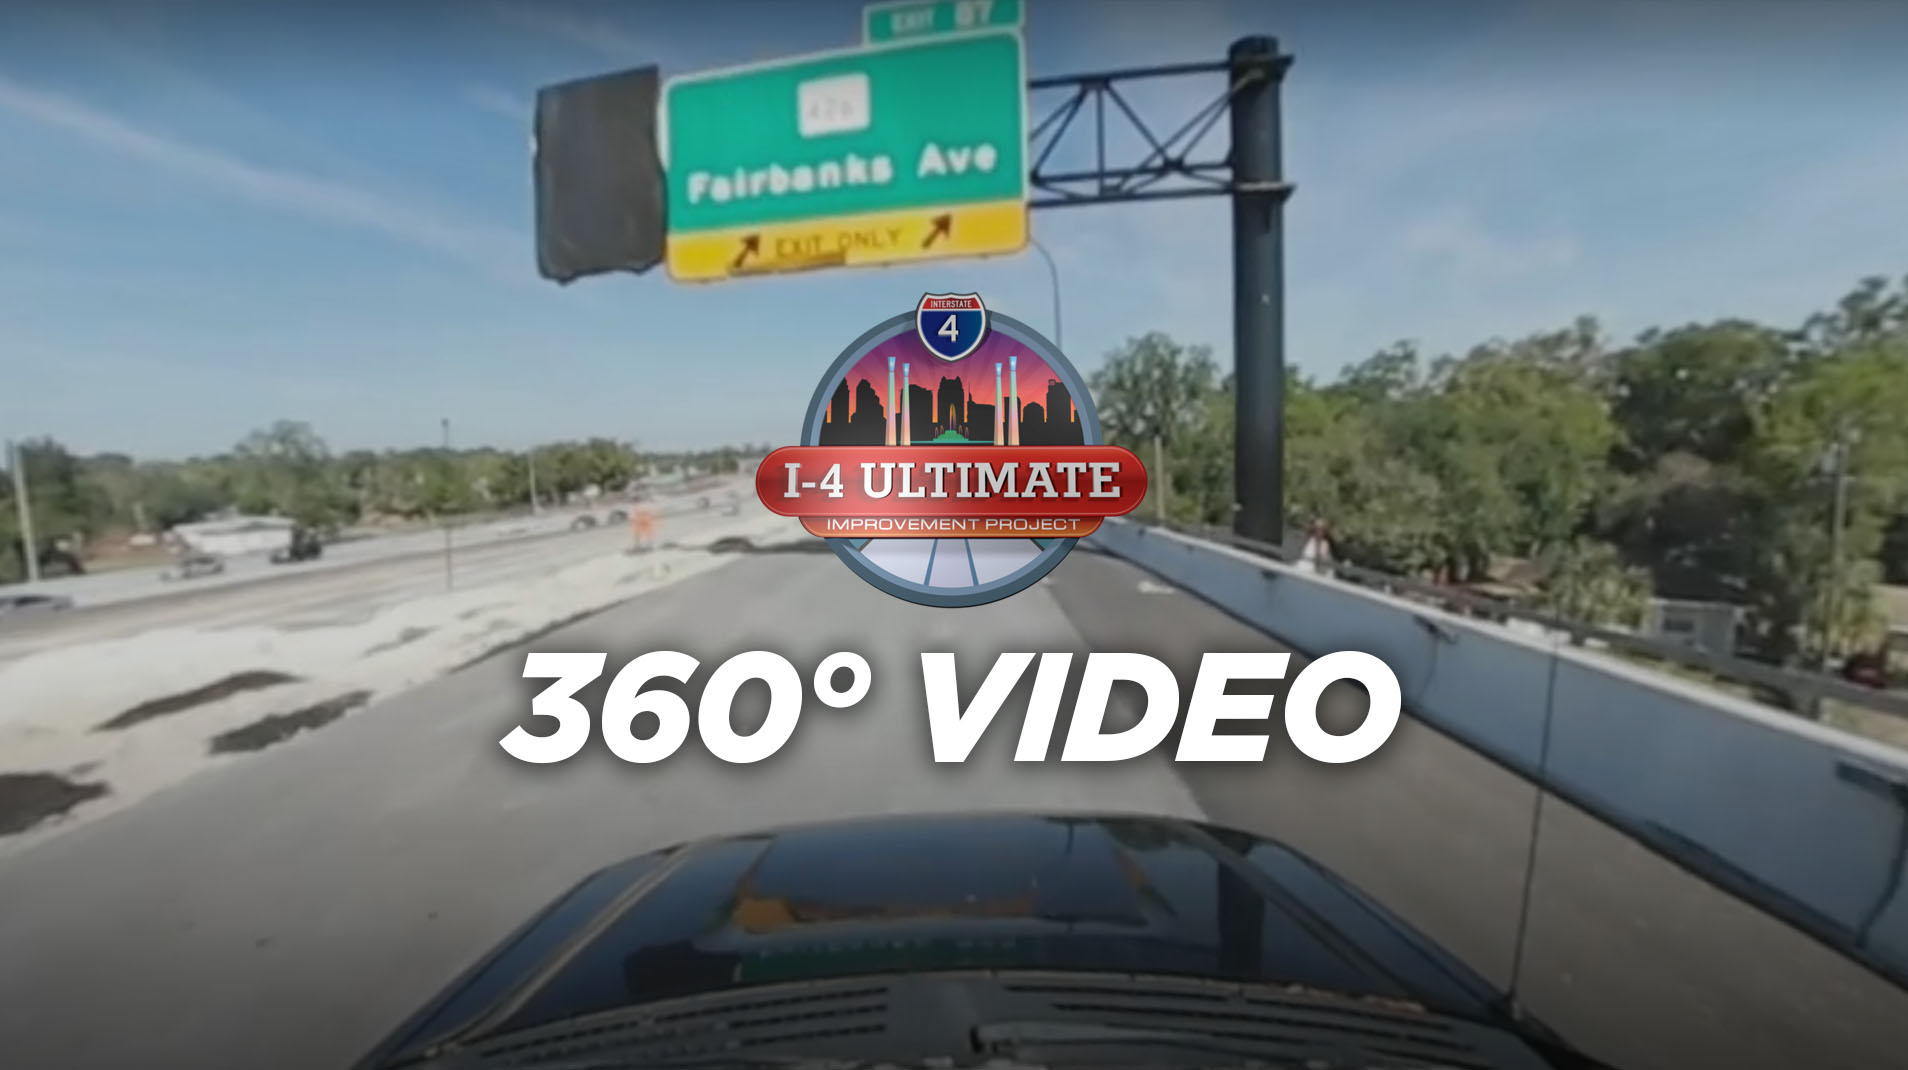 Global-5 produces 360° video previewing new eastbound exit ramp on I-4 Ultimate Improvement Project